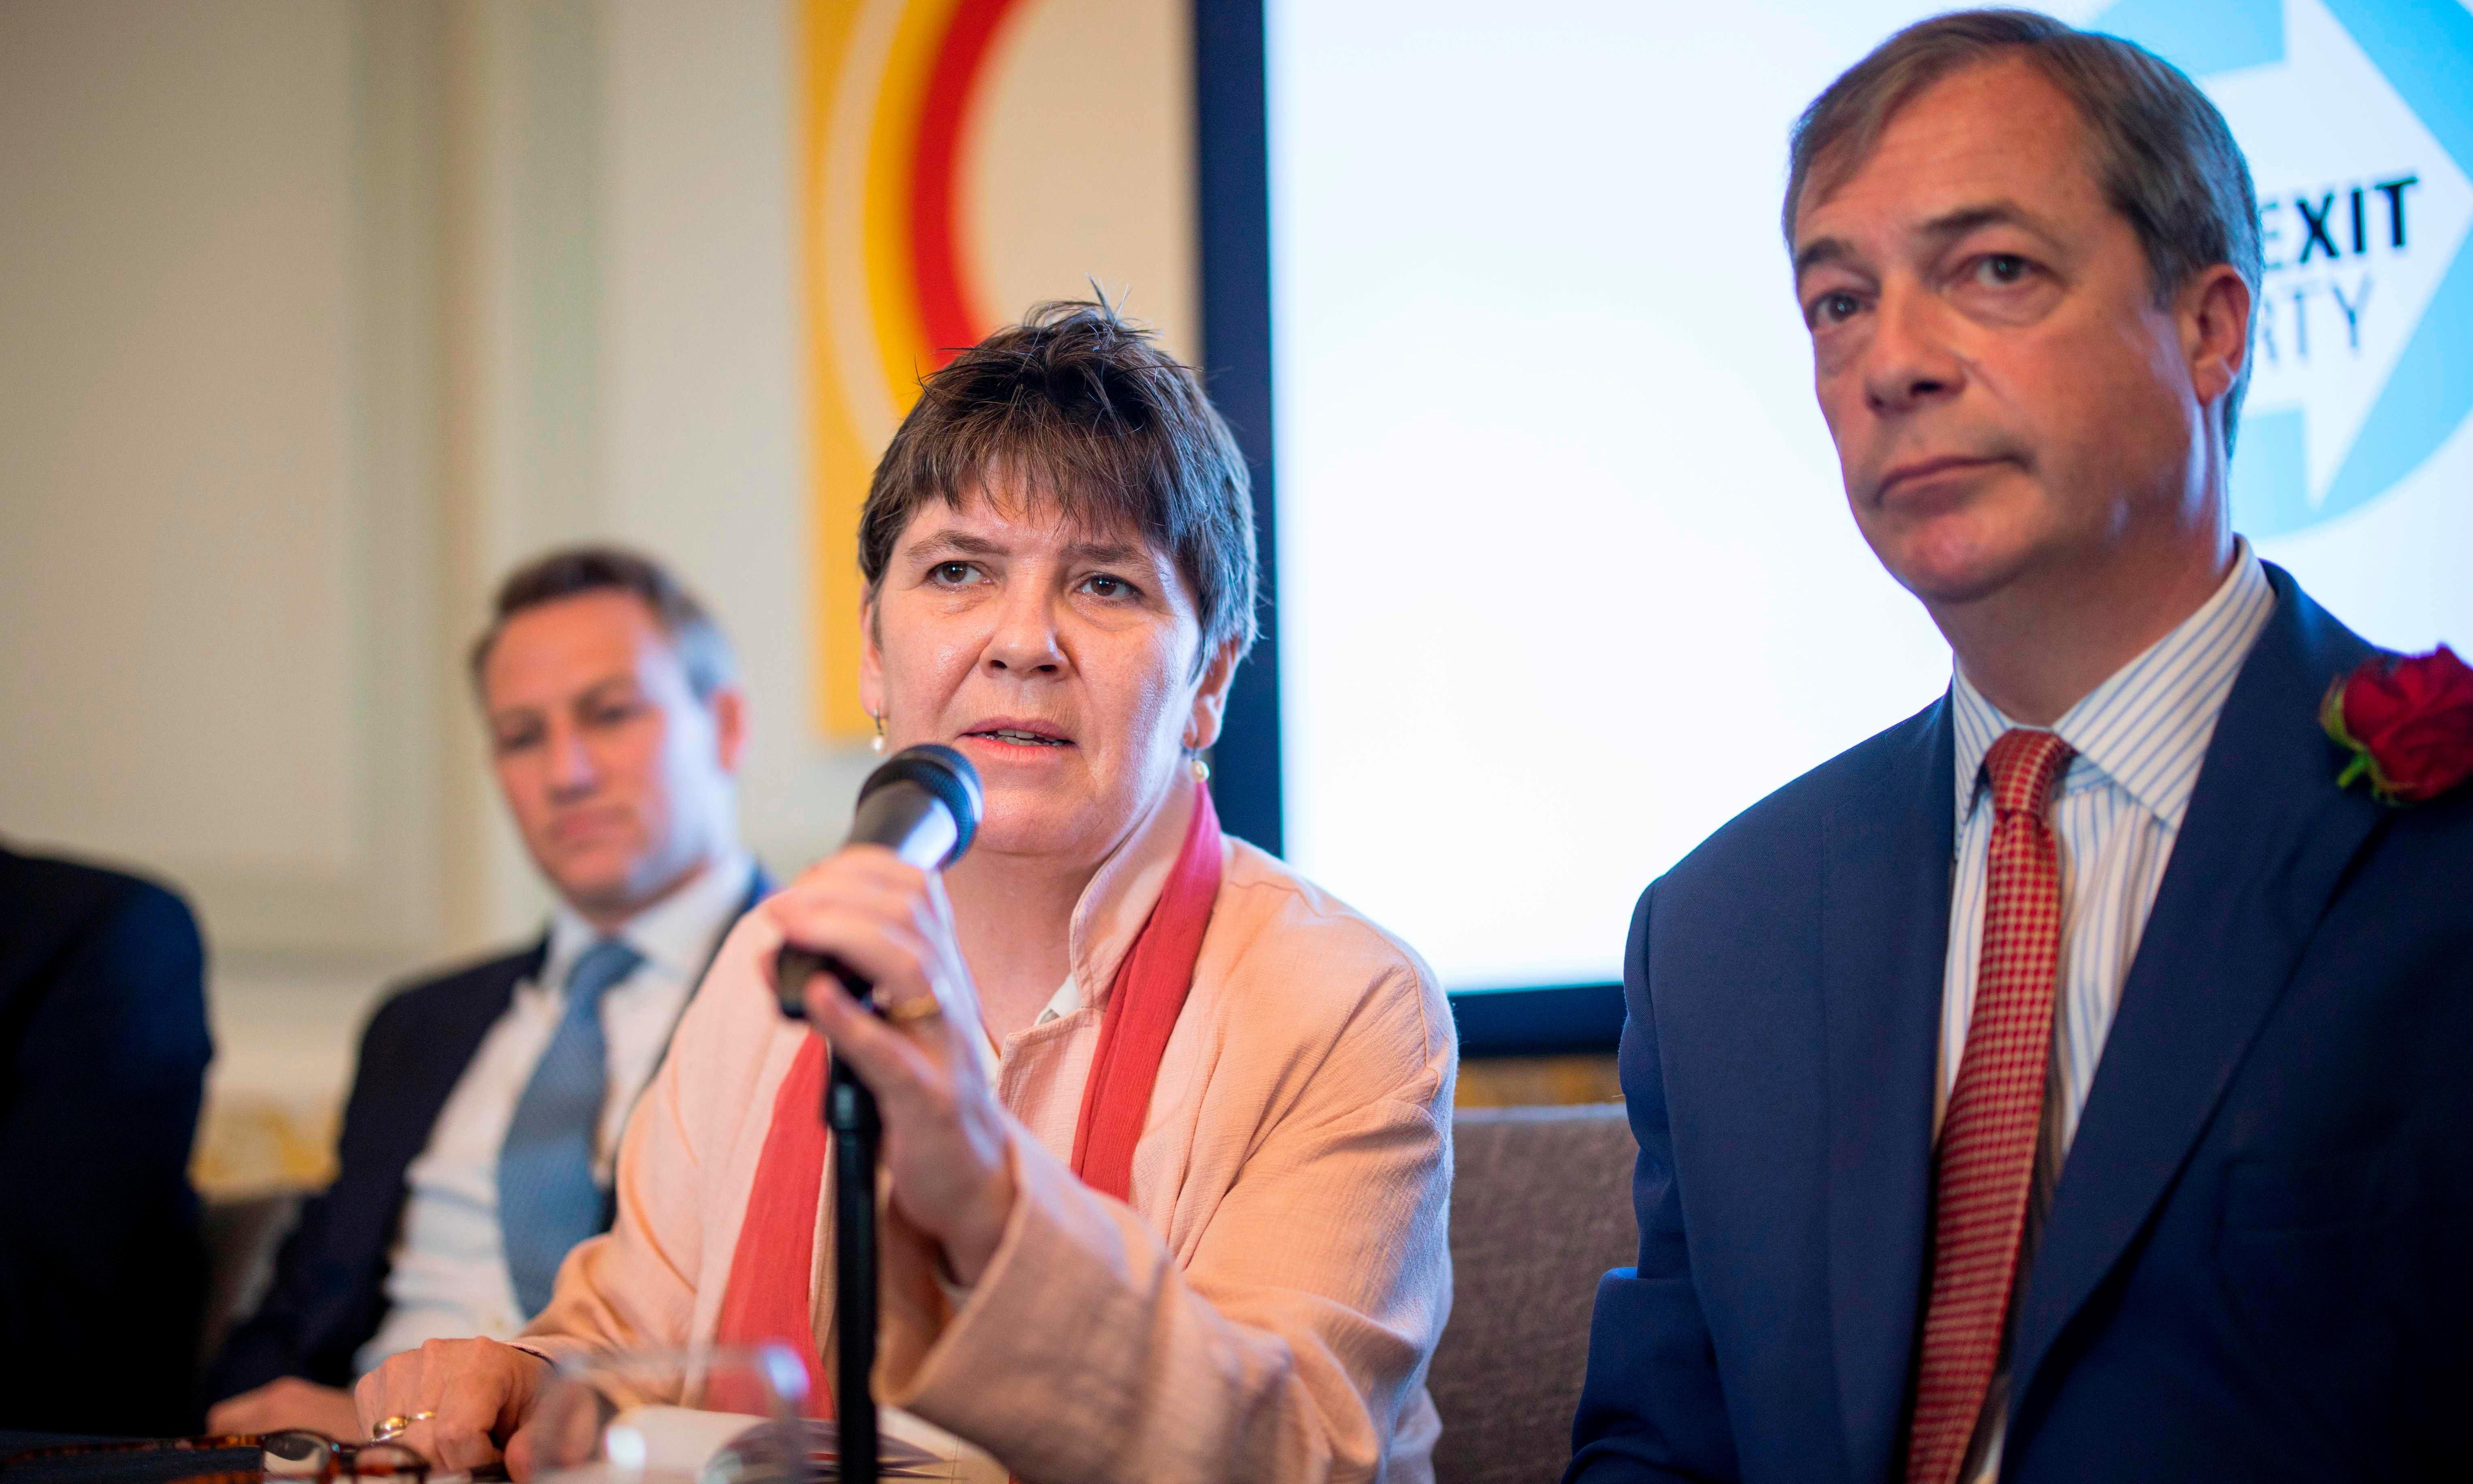 Farage's new recruits join class struggle for the glorification of Nige